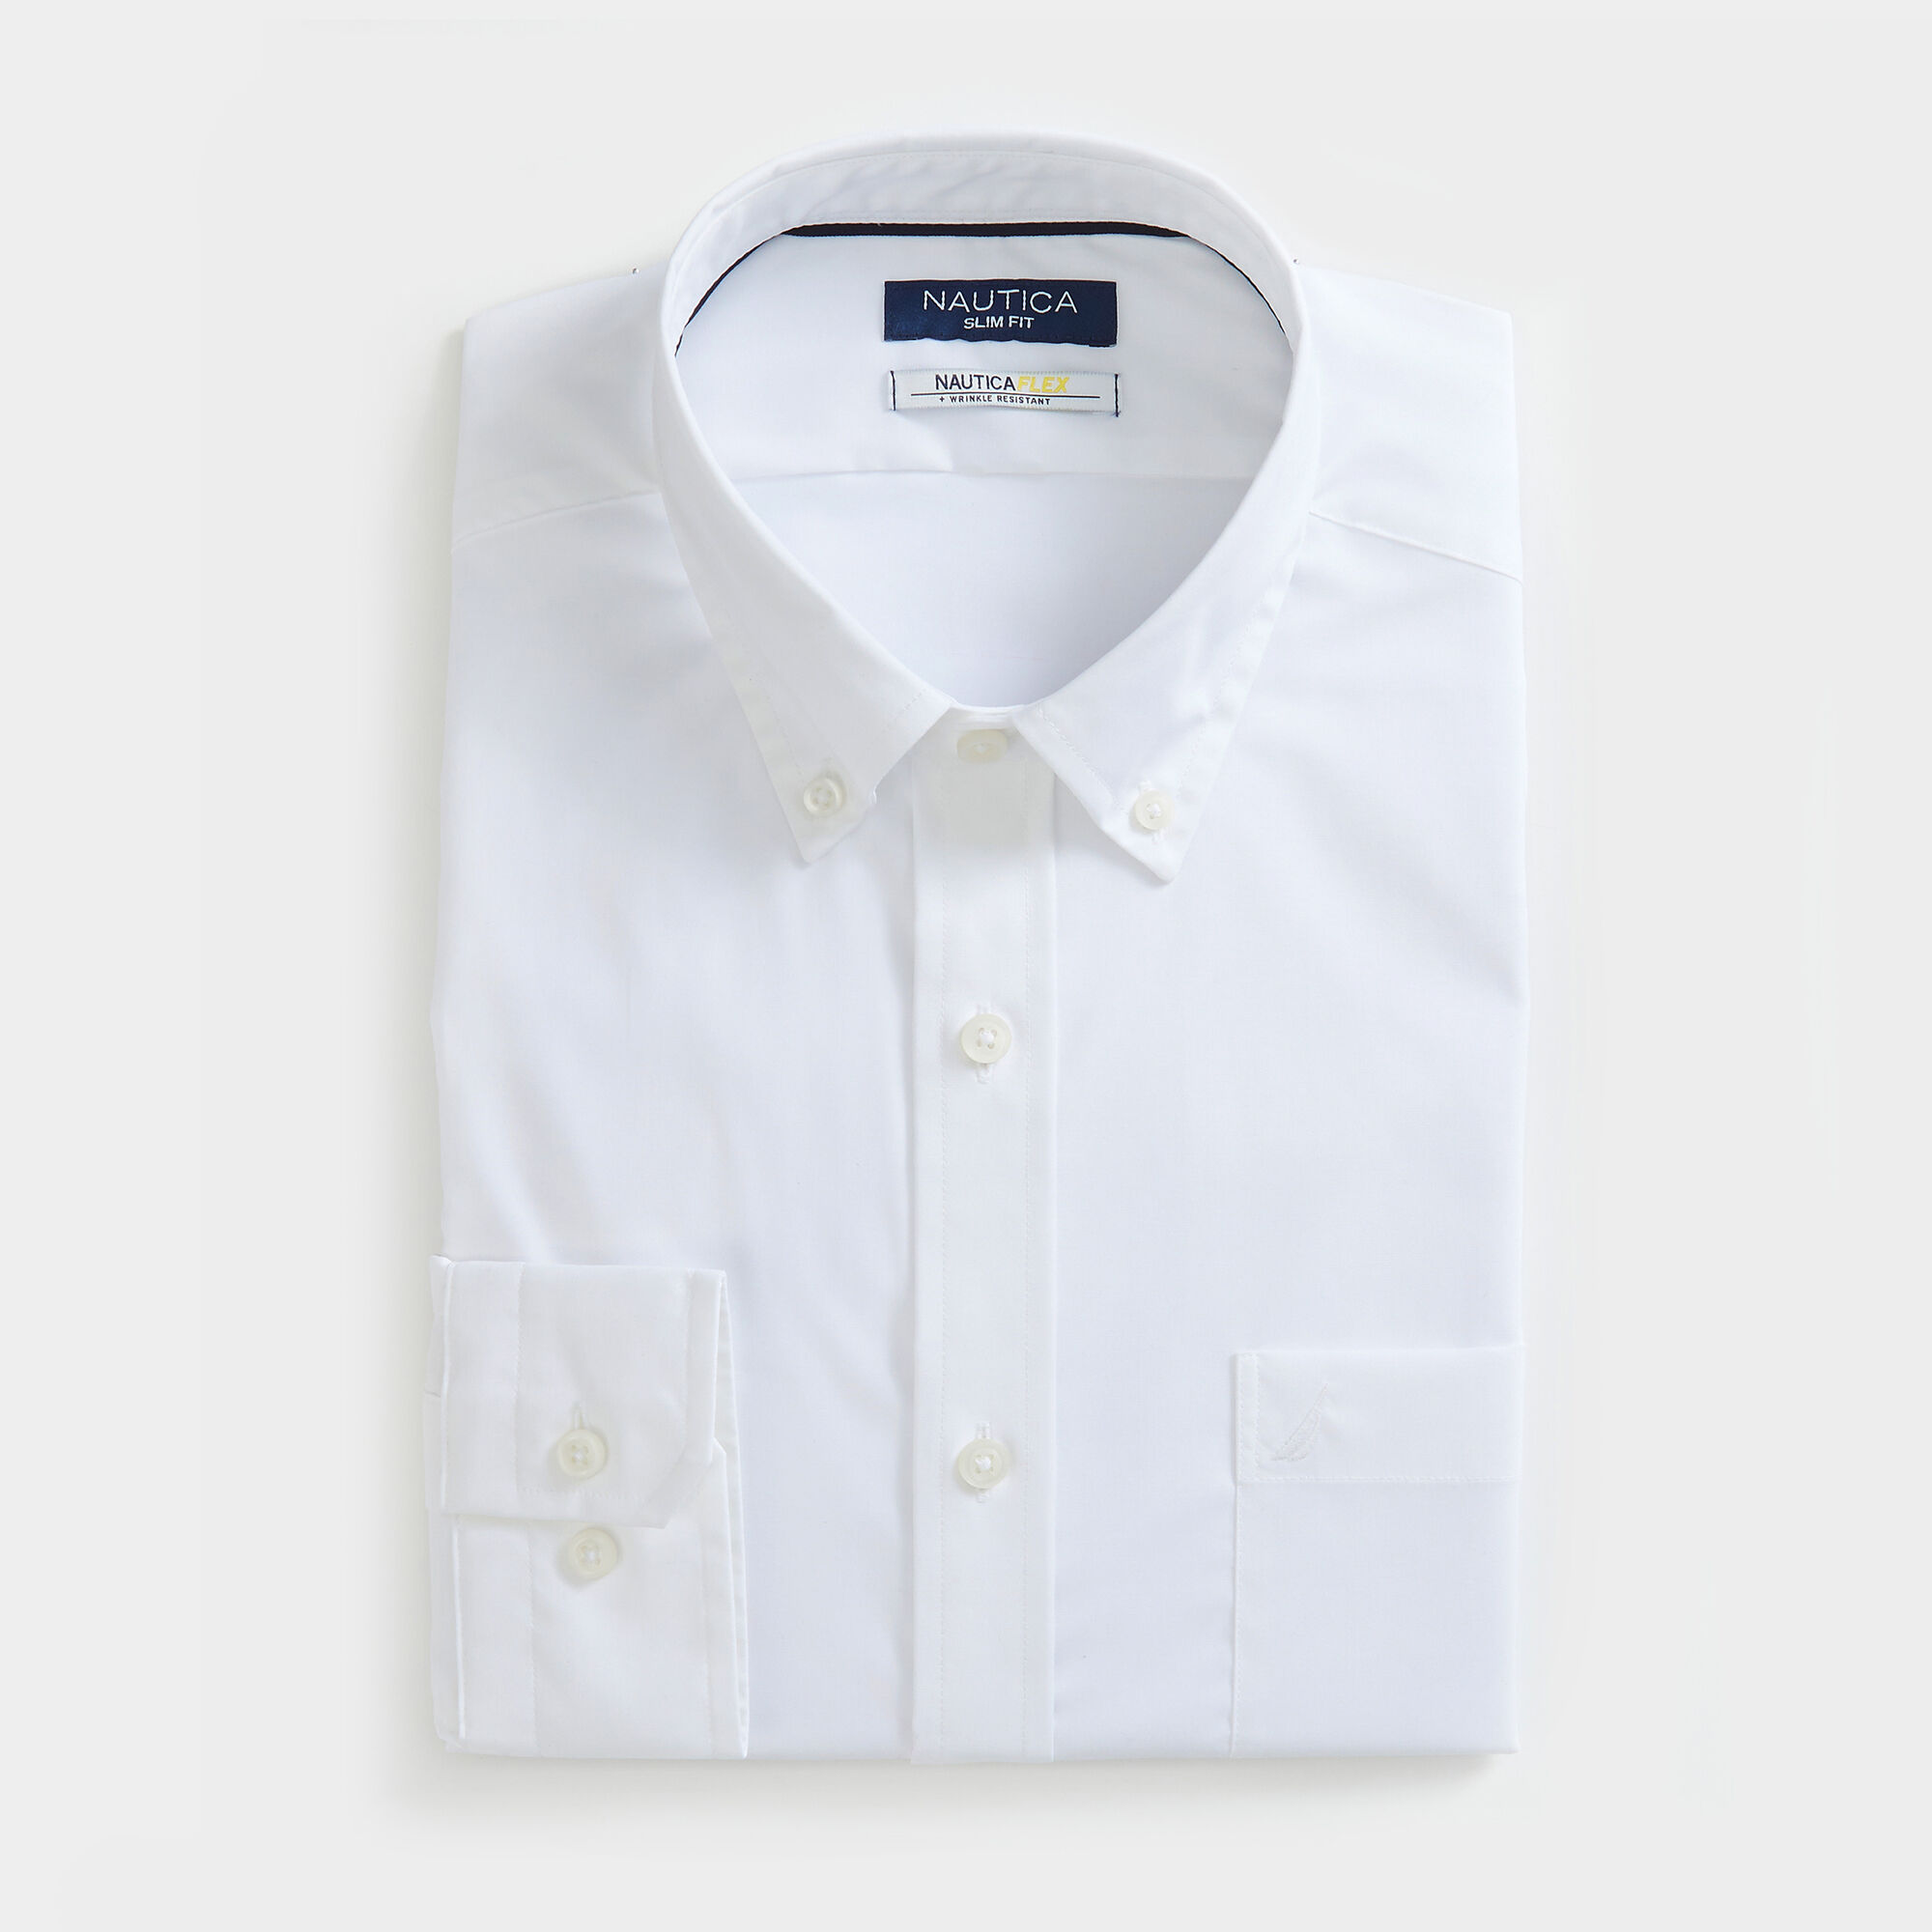 Nautica Mens Classic Fit Wrinkle Resistant Solid Shirt